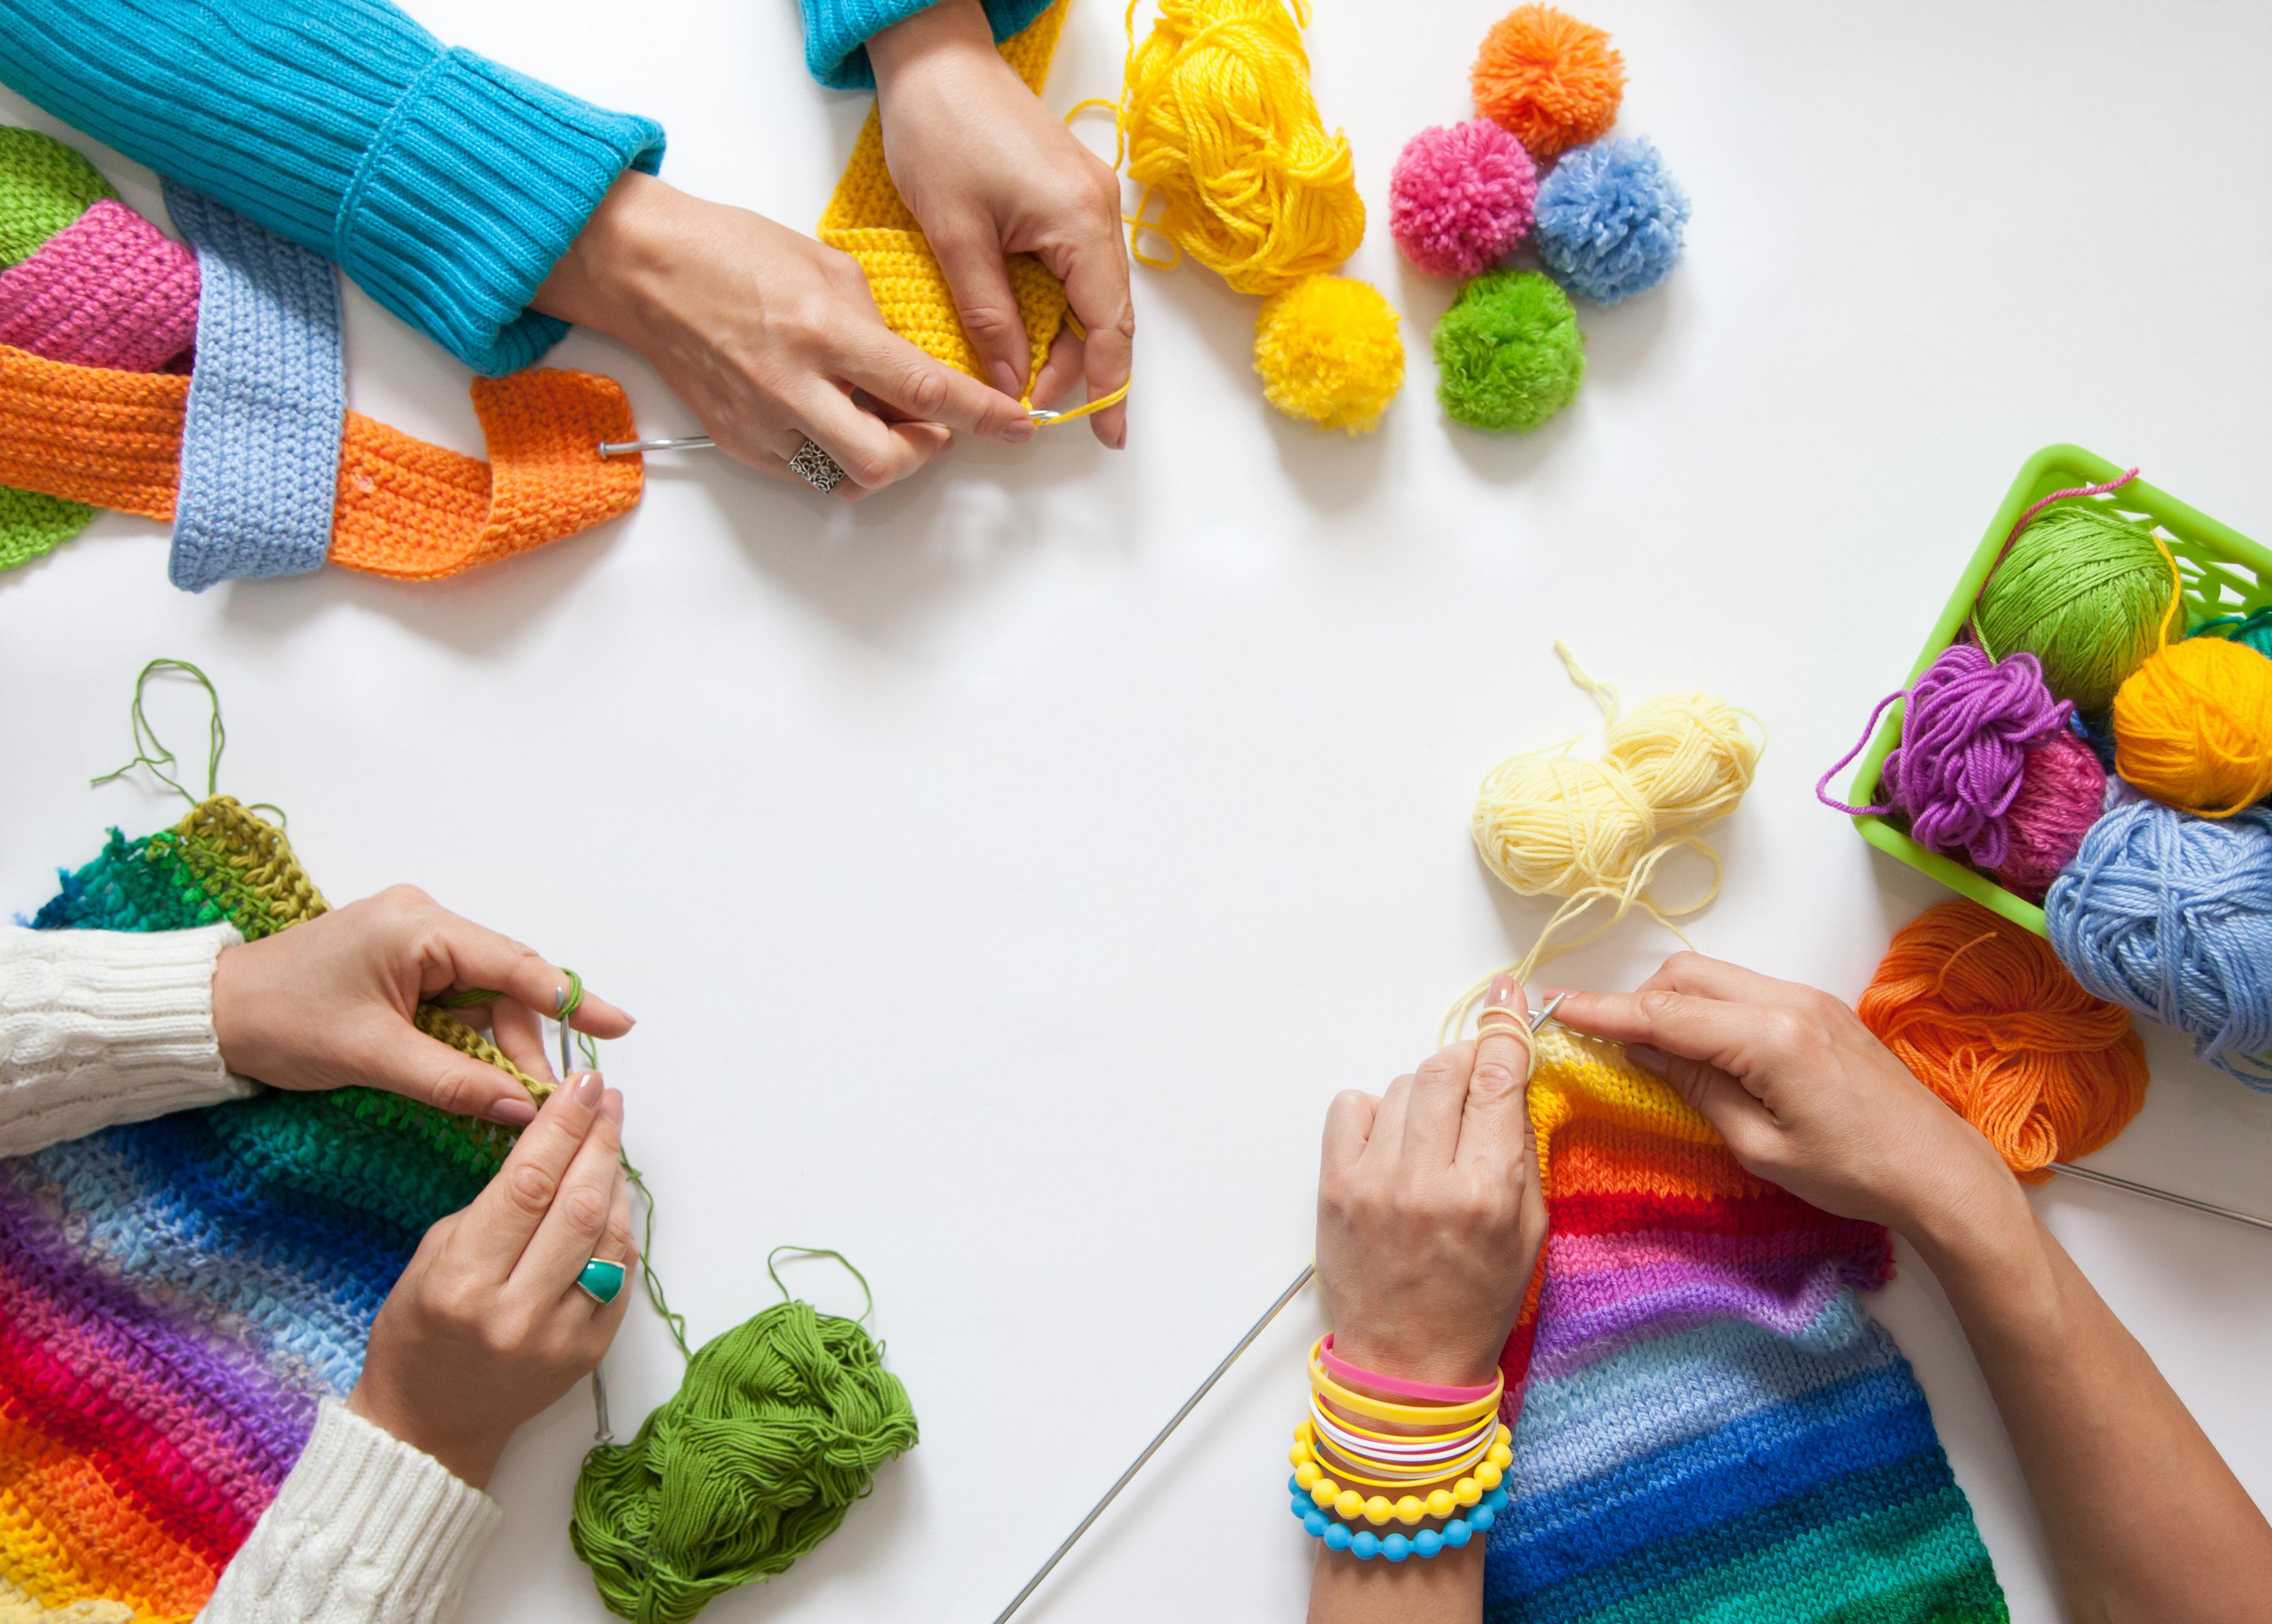 Image for Knitting and Crotchet Group